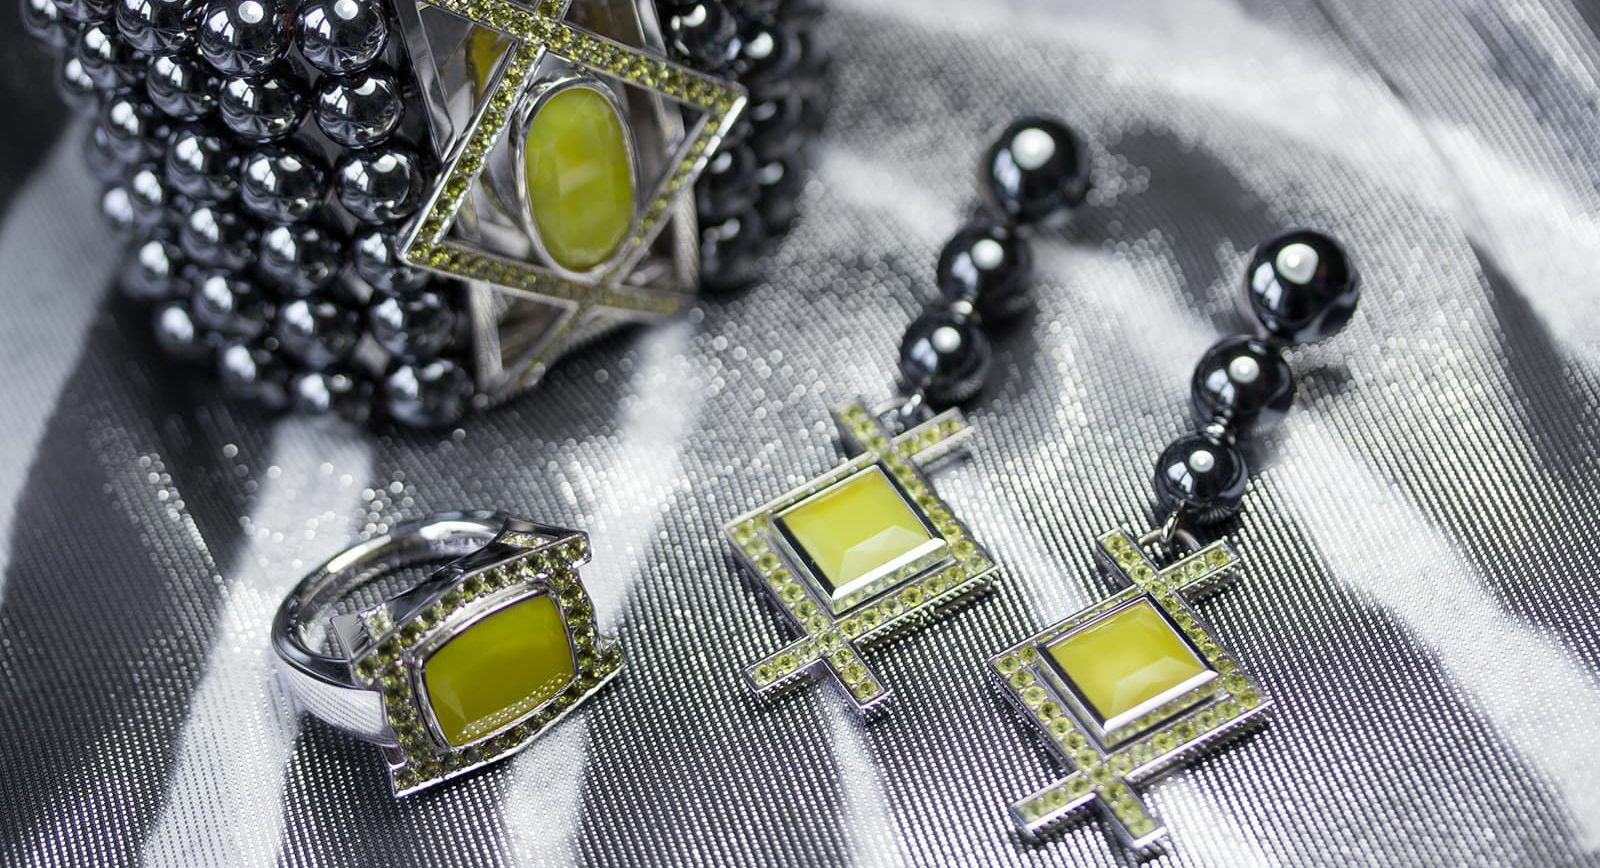 Brummé Su Sulfuru jewels set with yellow smithsonite from Sardinia, canary tourmalines and haematite globes